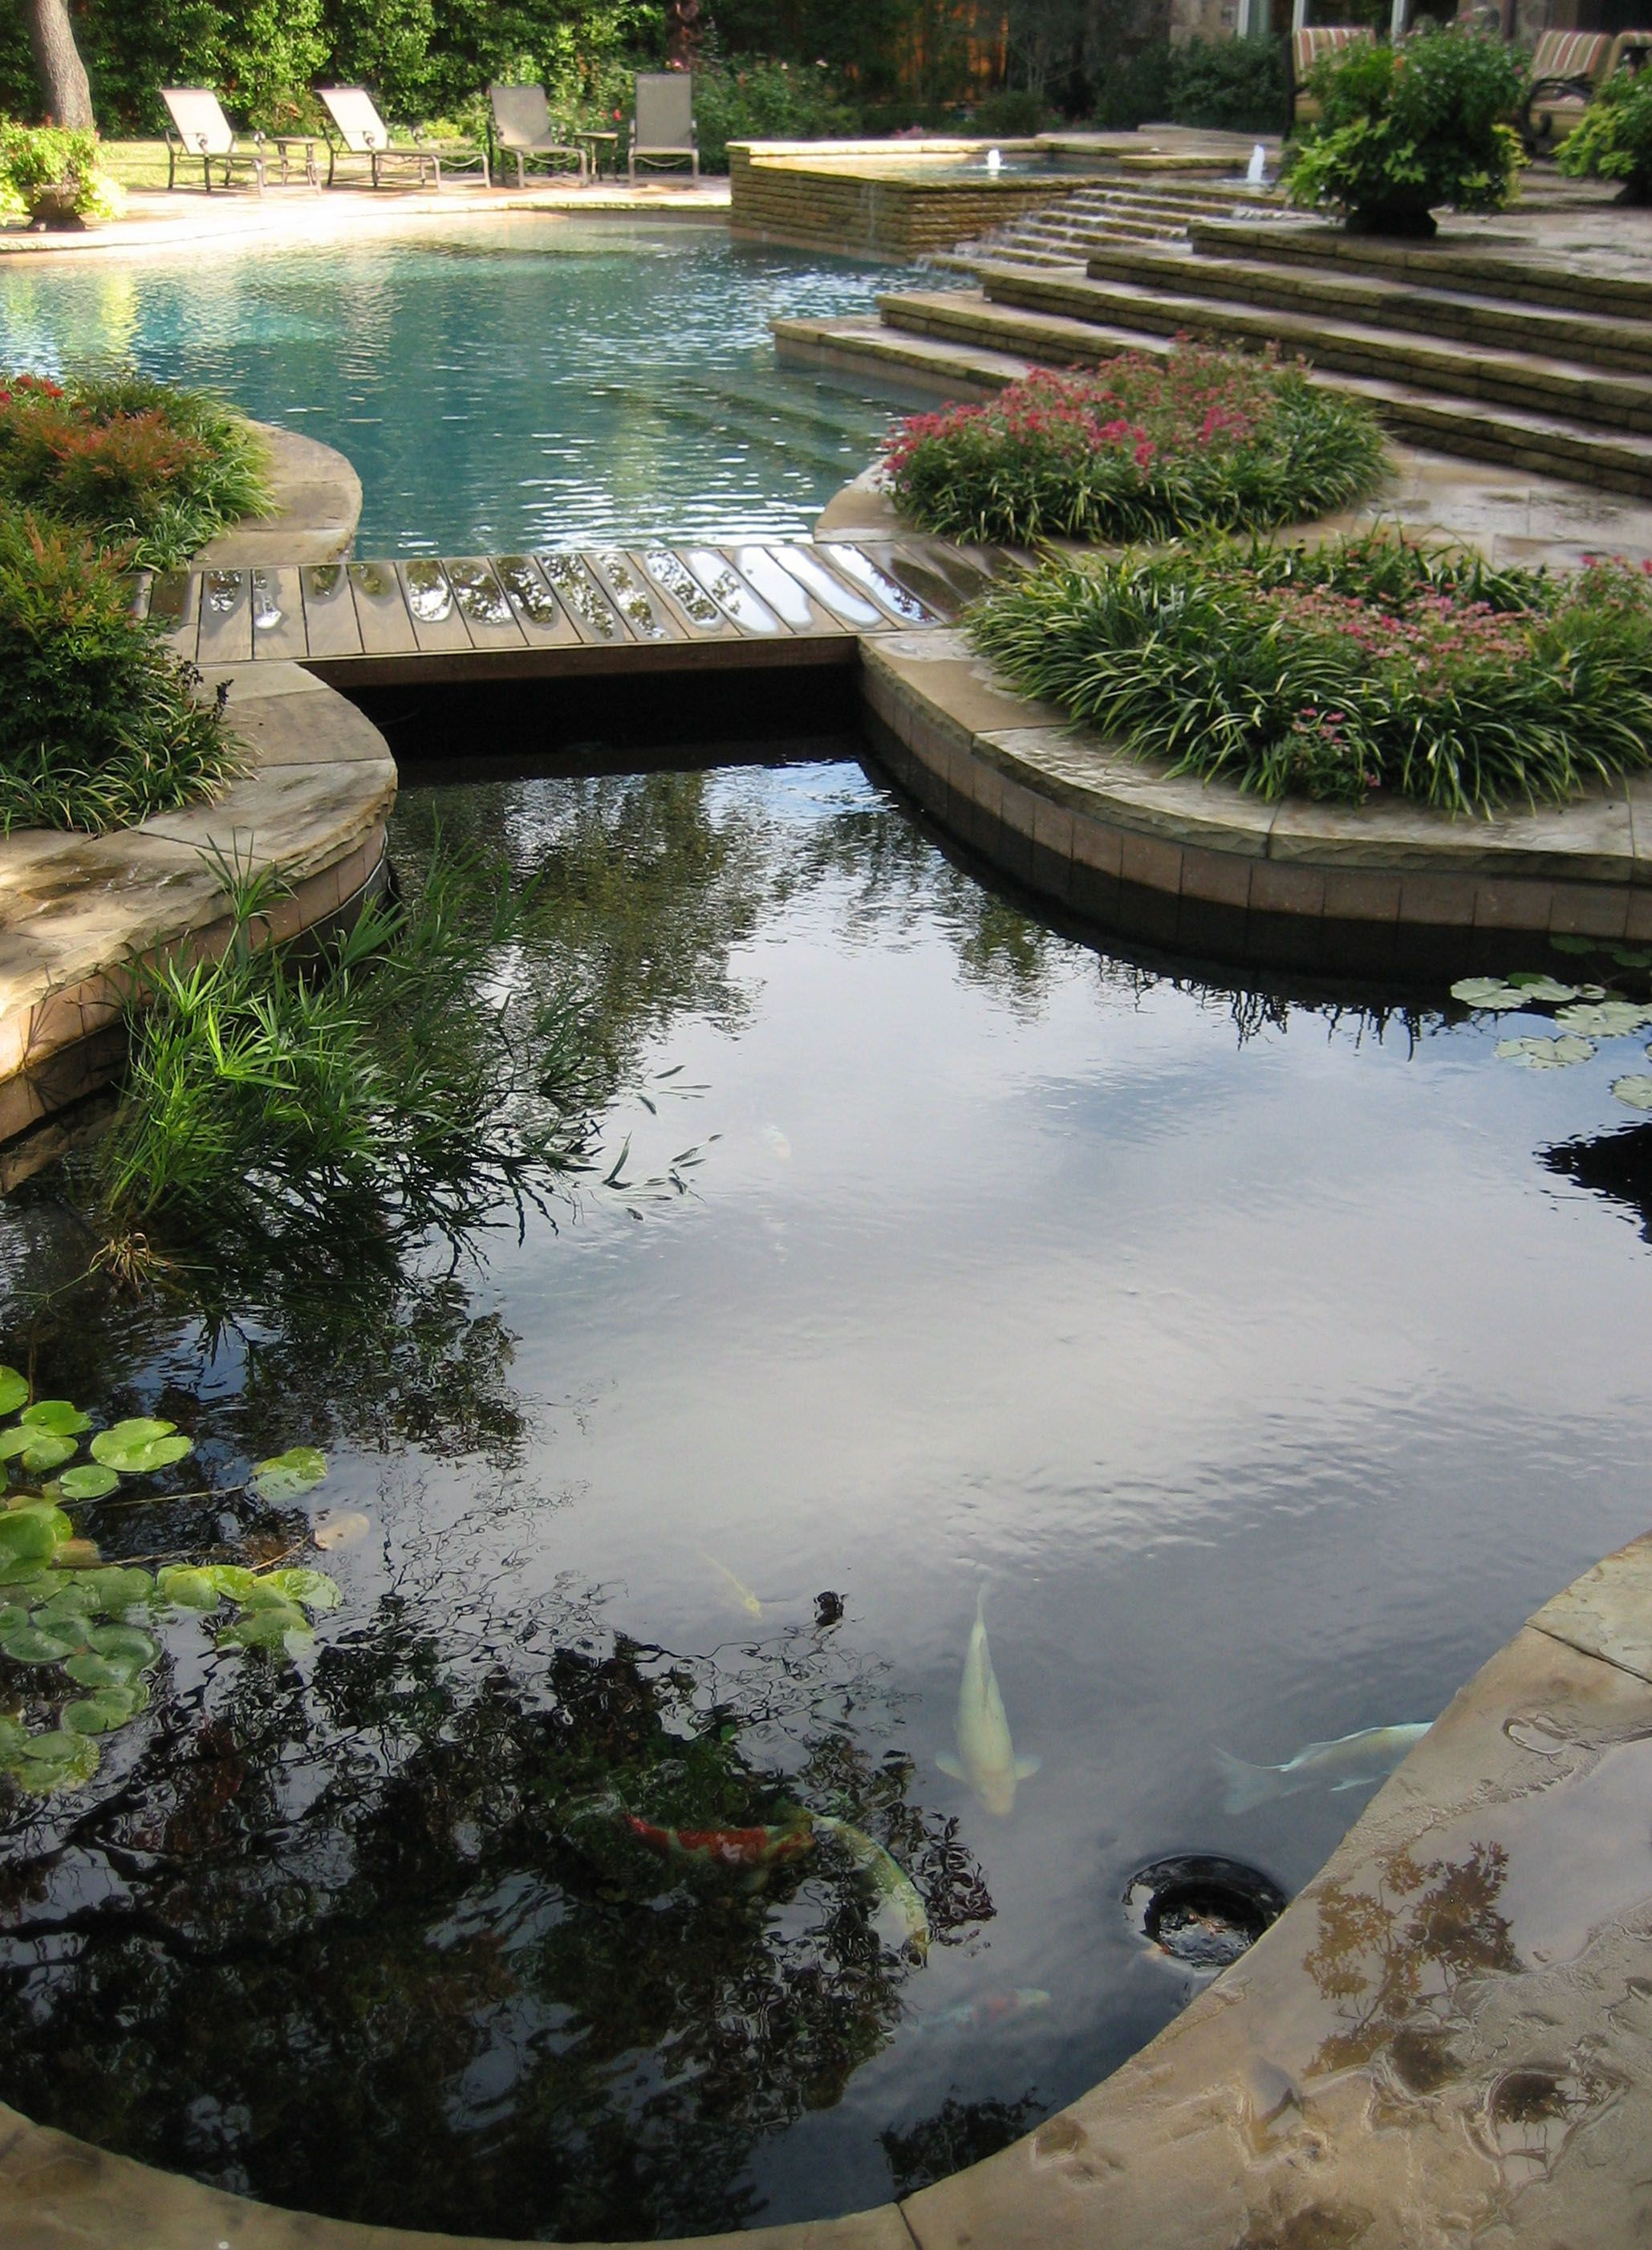 Koi pond and pool design with hidden barrier underneath for The koi pool